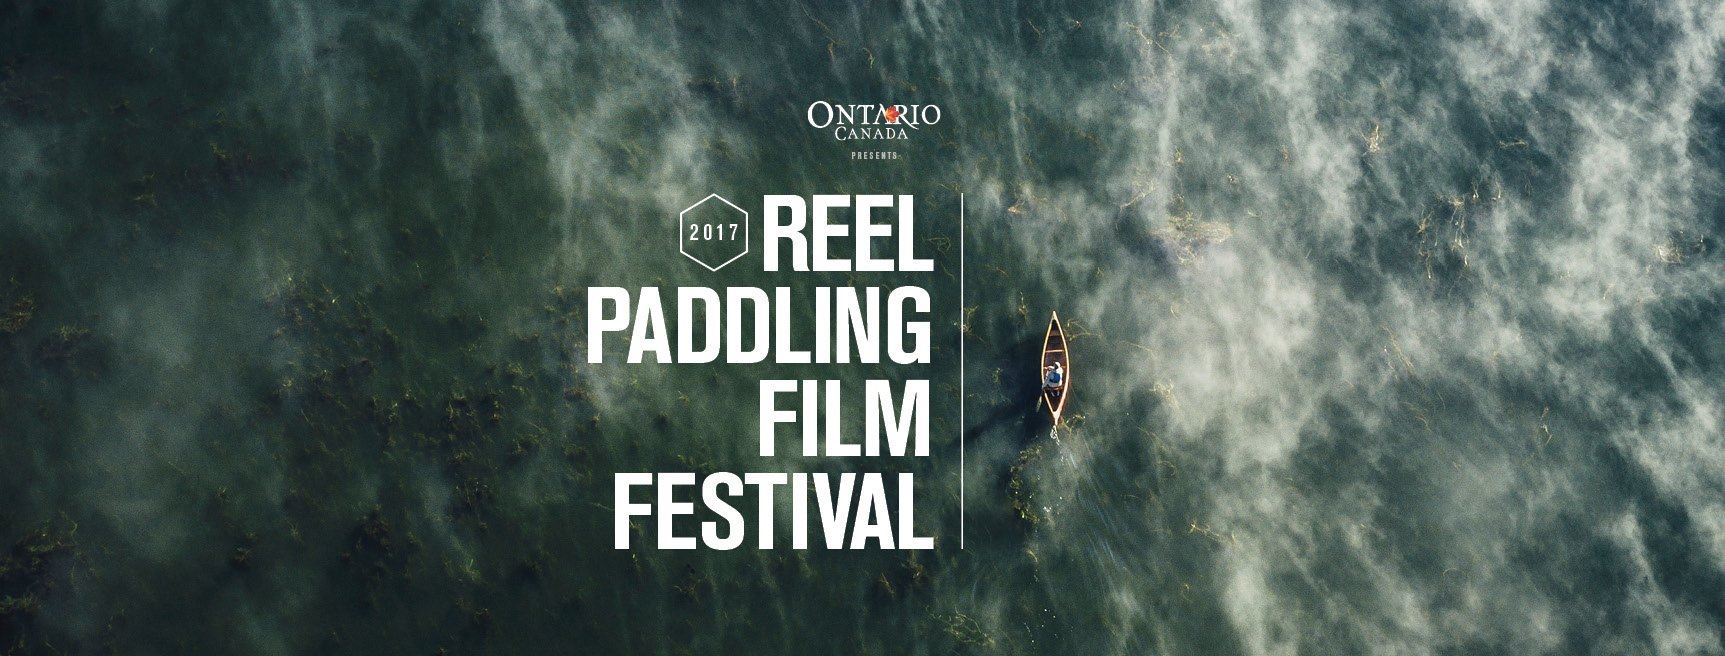 Reel Paddling Film Festival World Tour 2017 - Kustleden,  © Reel Paddling Film Festival World Tour 2017 - Kustleden, Reel Paddling Film Festival World Tour 2017 - Strömsbruk, Sweden